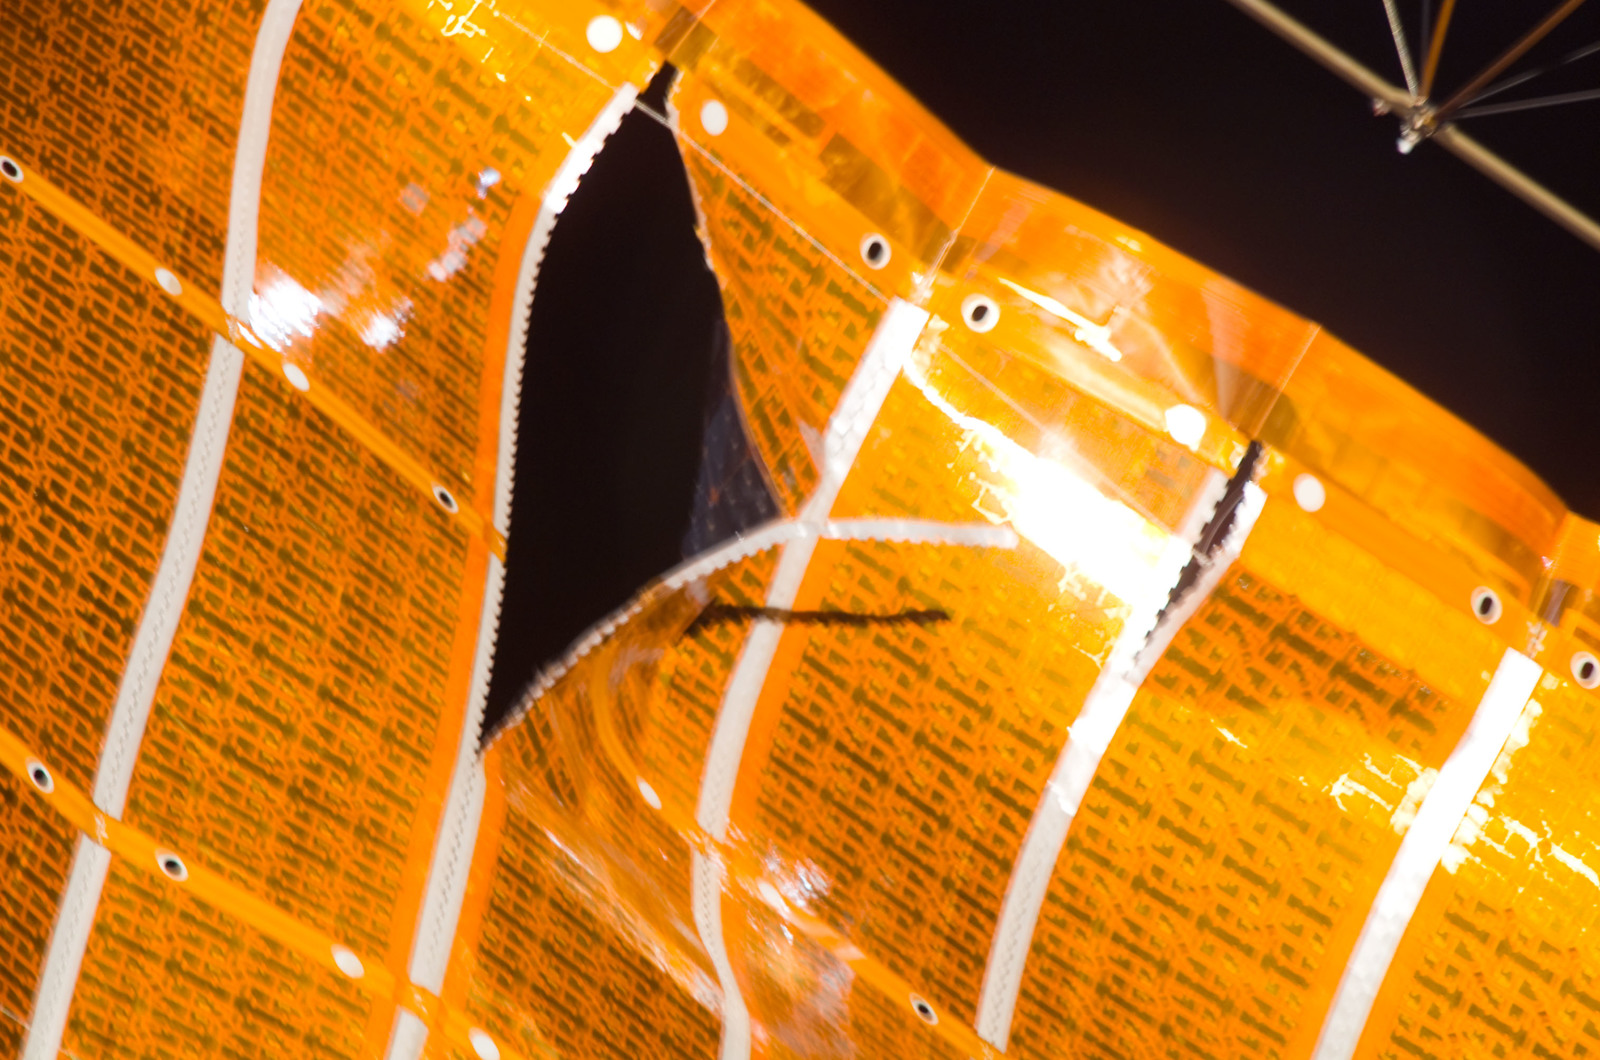 S120E008241 - STS-120 - Damaged P6 4B solar array wing